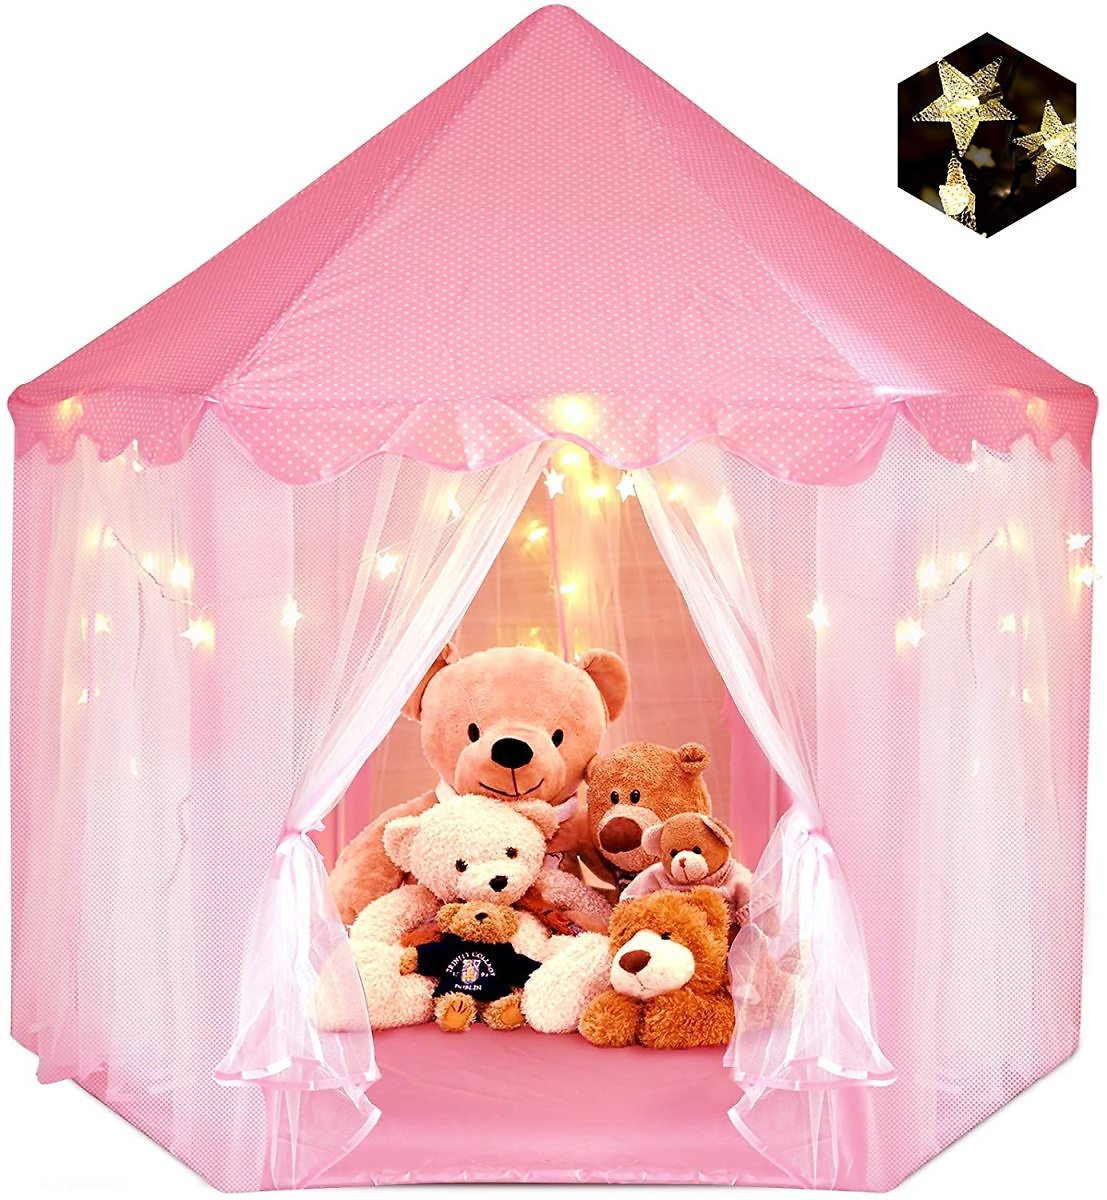 Princess Tent for Girls, ZUOSEN Large Castle Play Tent for Girls with LED Star Lights Indoor Outdoor Girl Toys Hexagon Playhouse, Foldable&Easy Carrying Girl Gift Pink Tent for Game 55.5